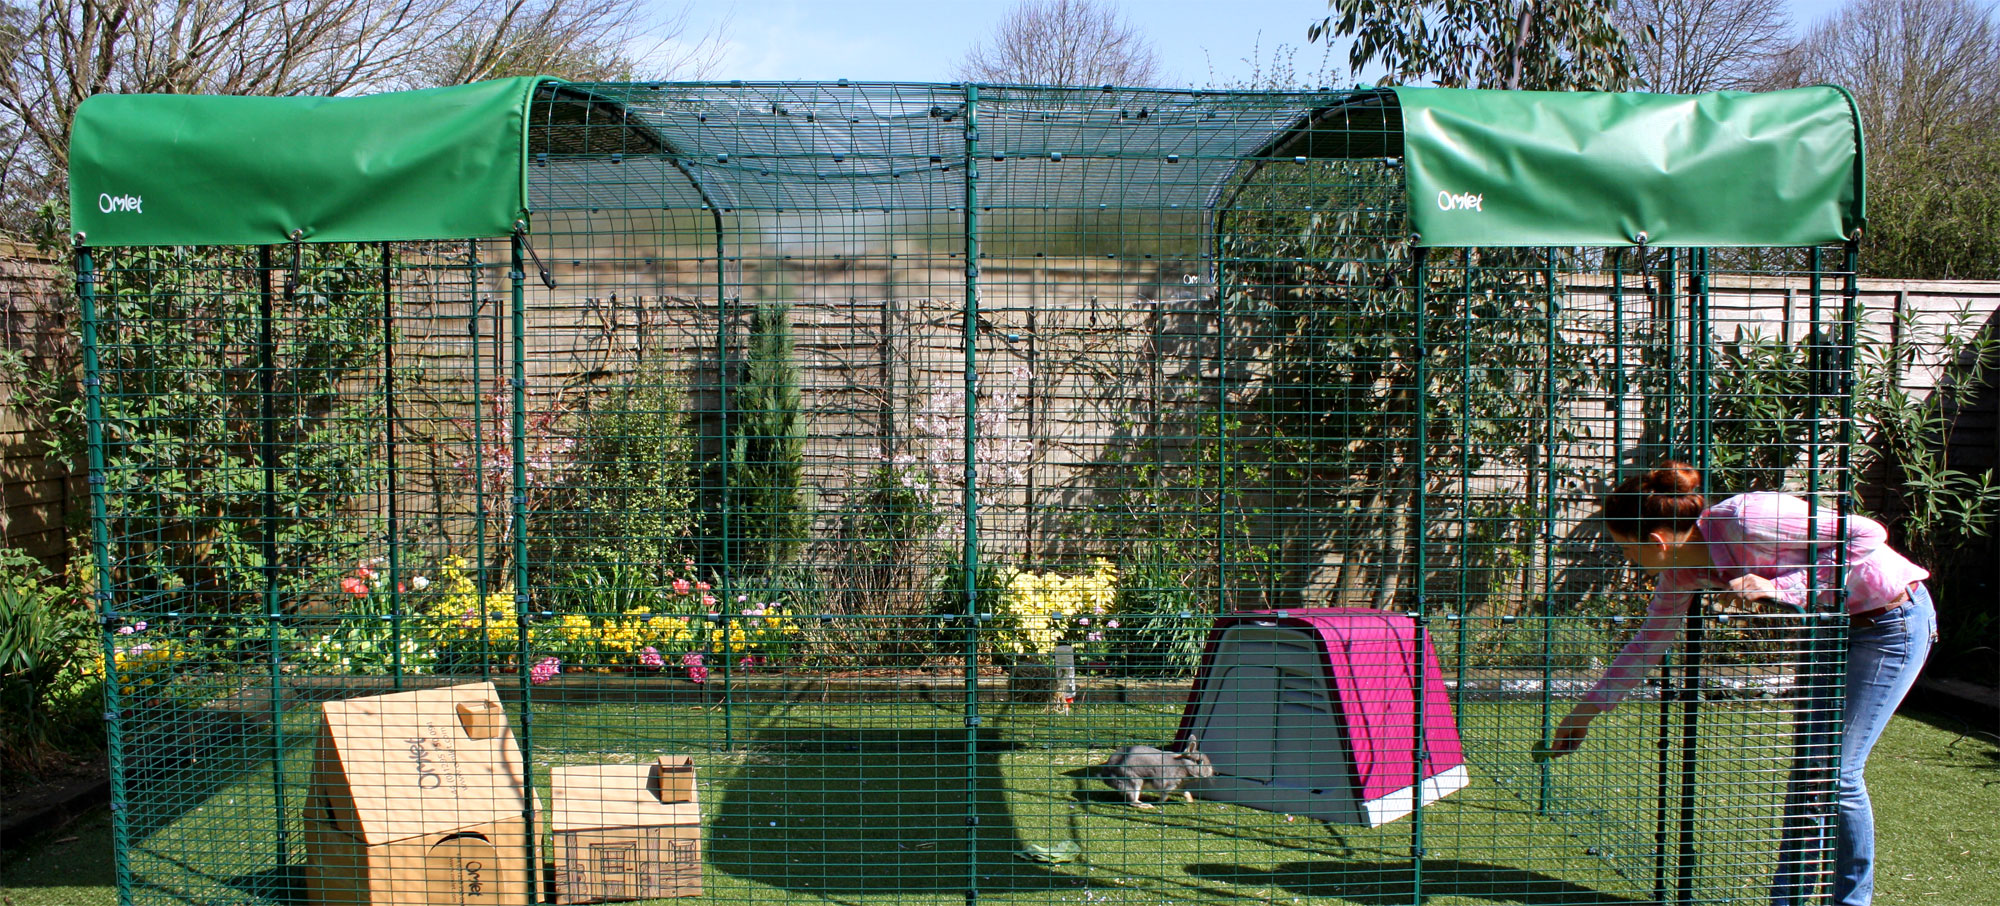 An extended 9ft x 13ft x 6ft Outdoor Rabbit Run will give your pet rabbits lots of space to hop around in.